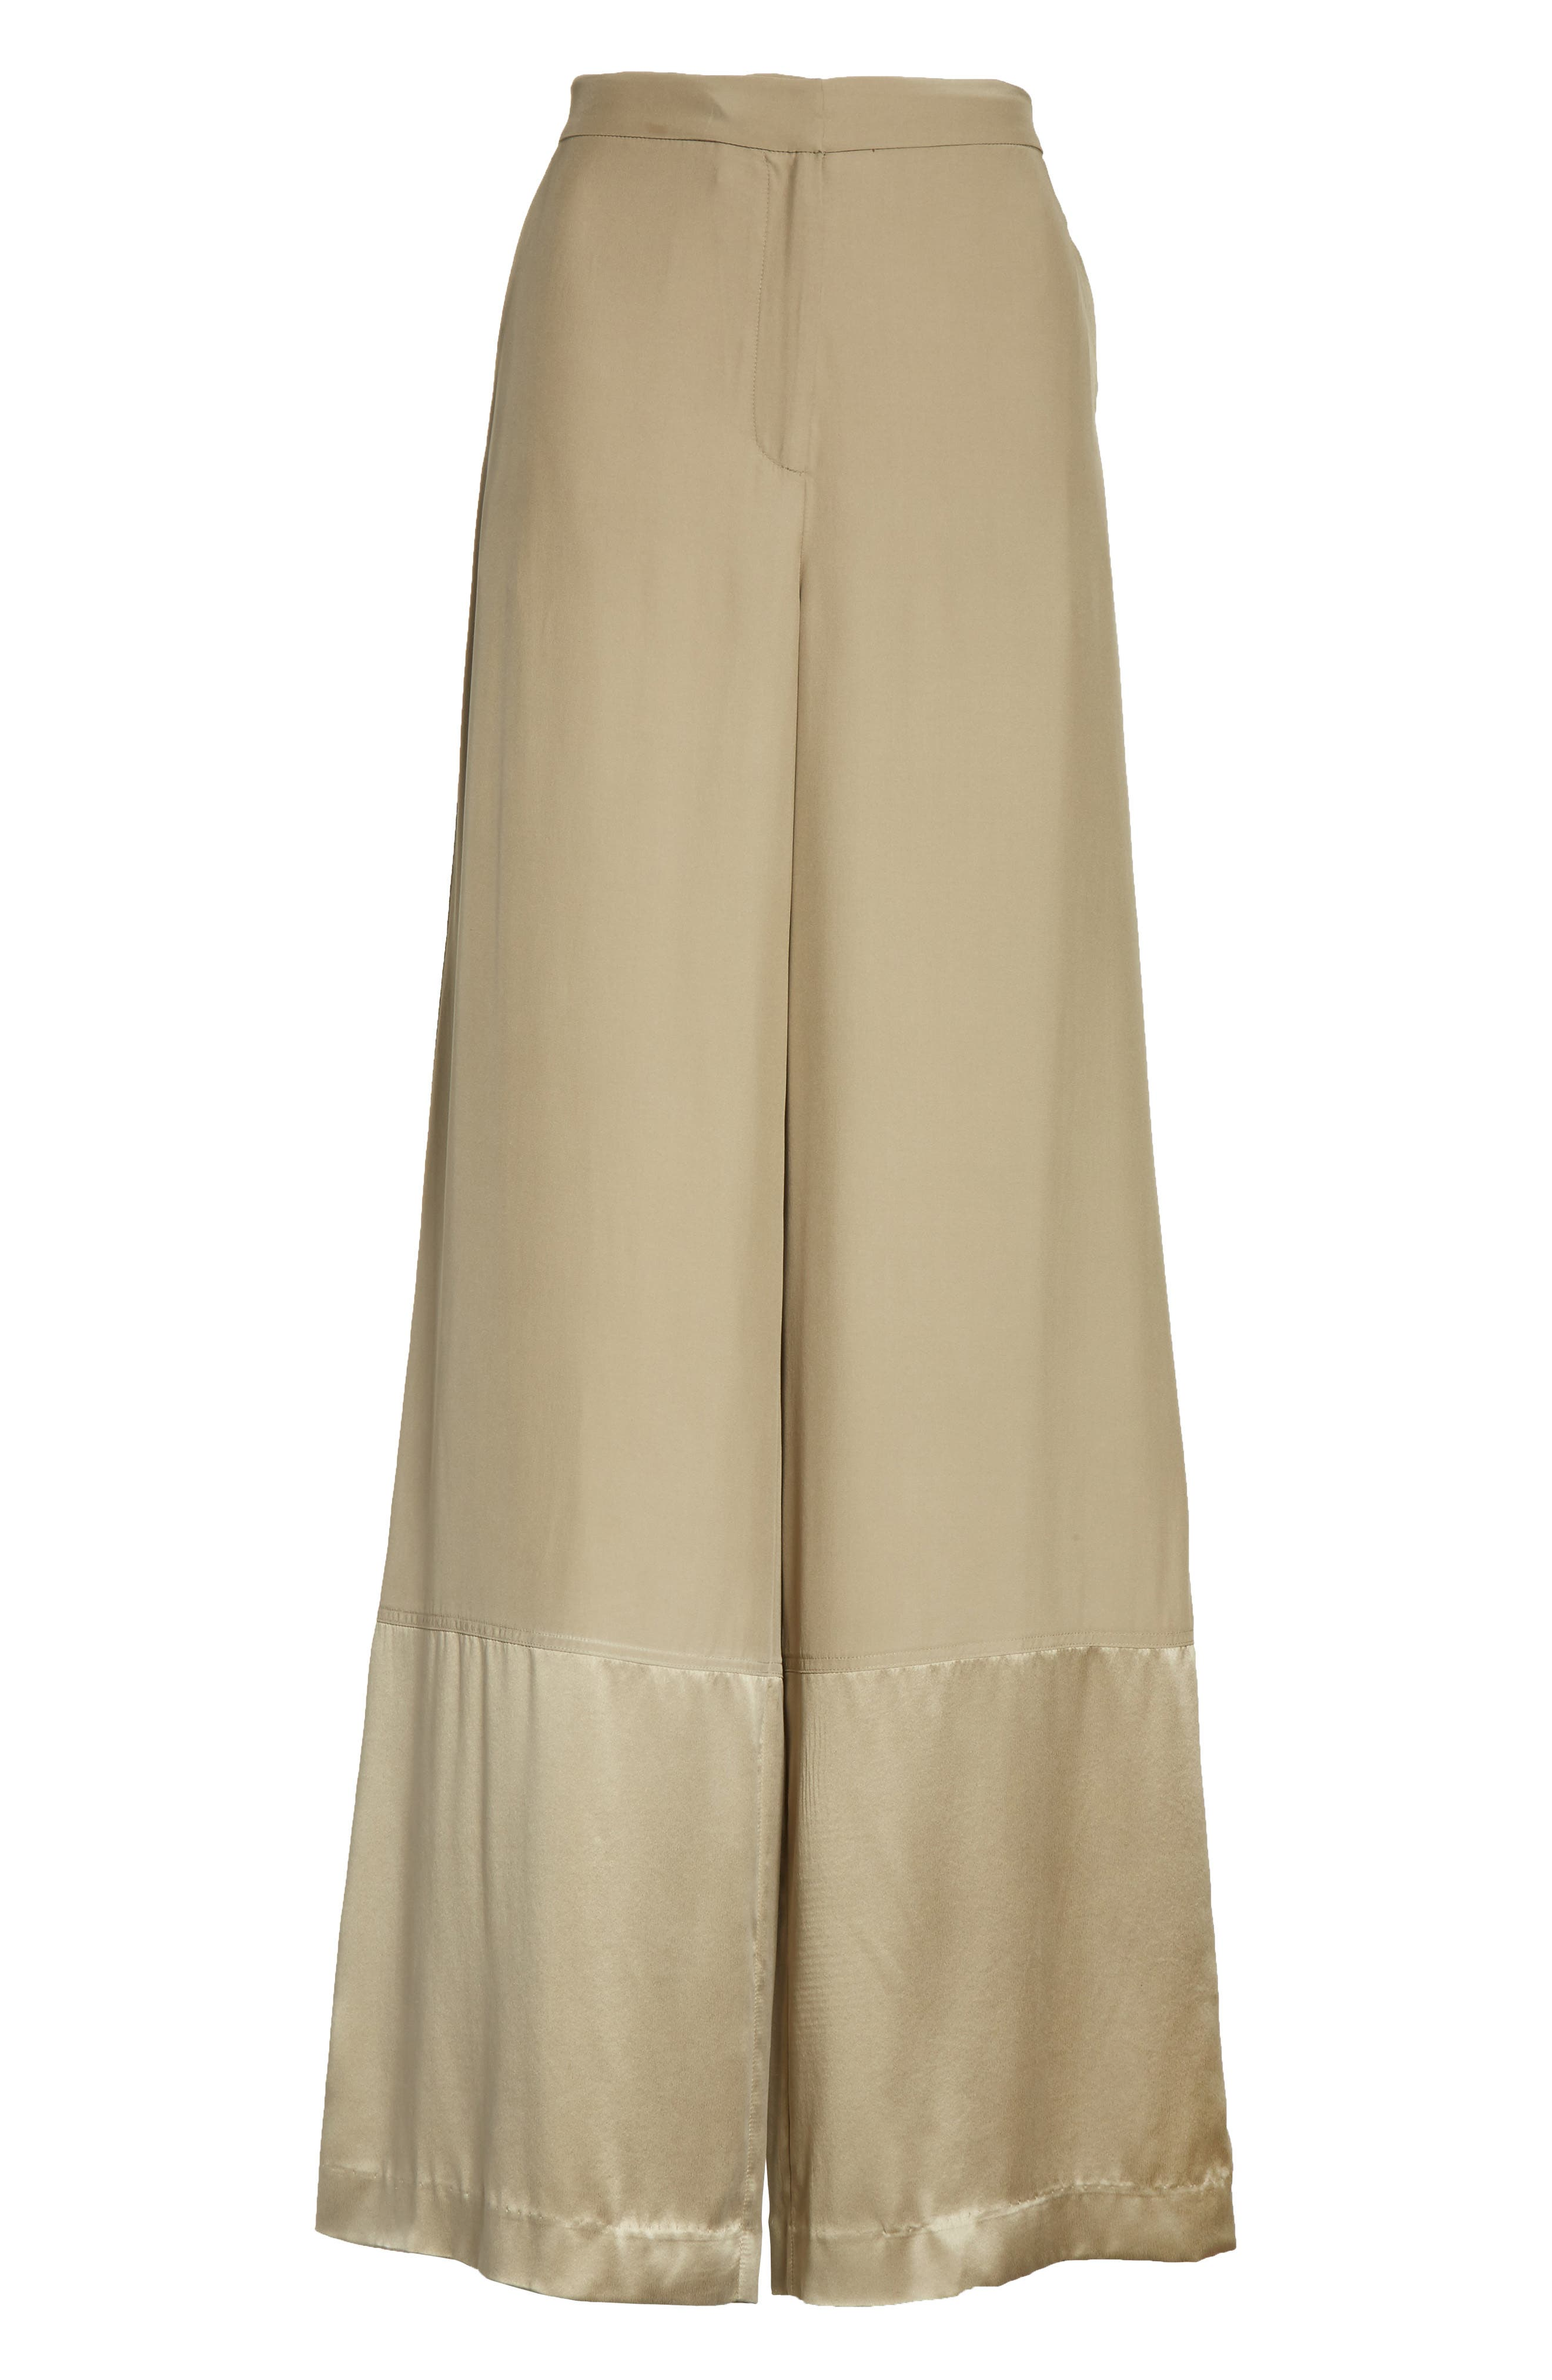 Satin Contrast Wide Leg Silk Pants,                             Alternate thumbnail 6, color,                             Light Army